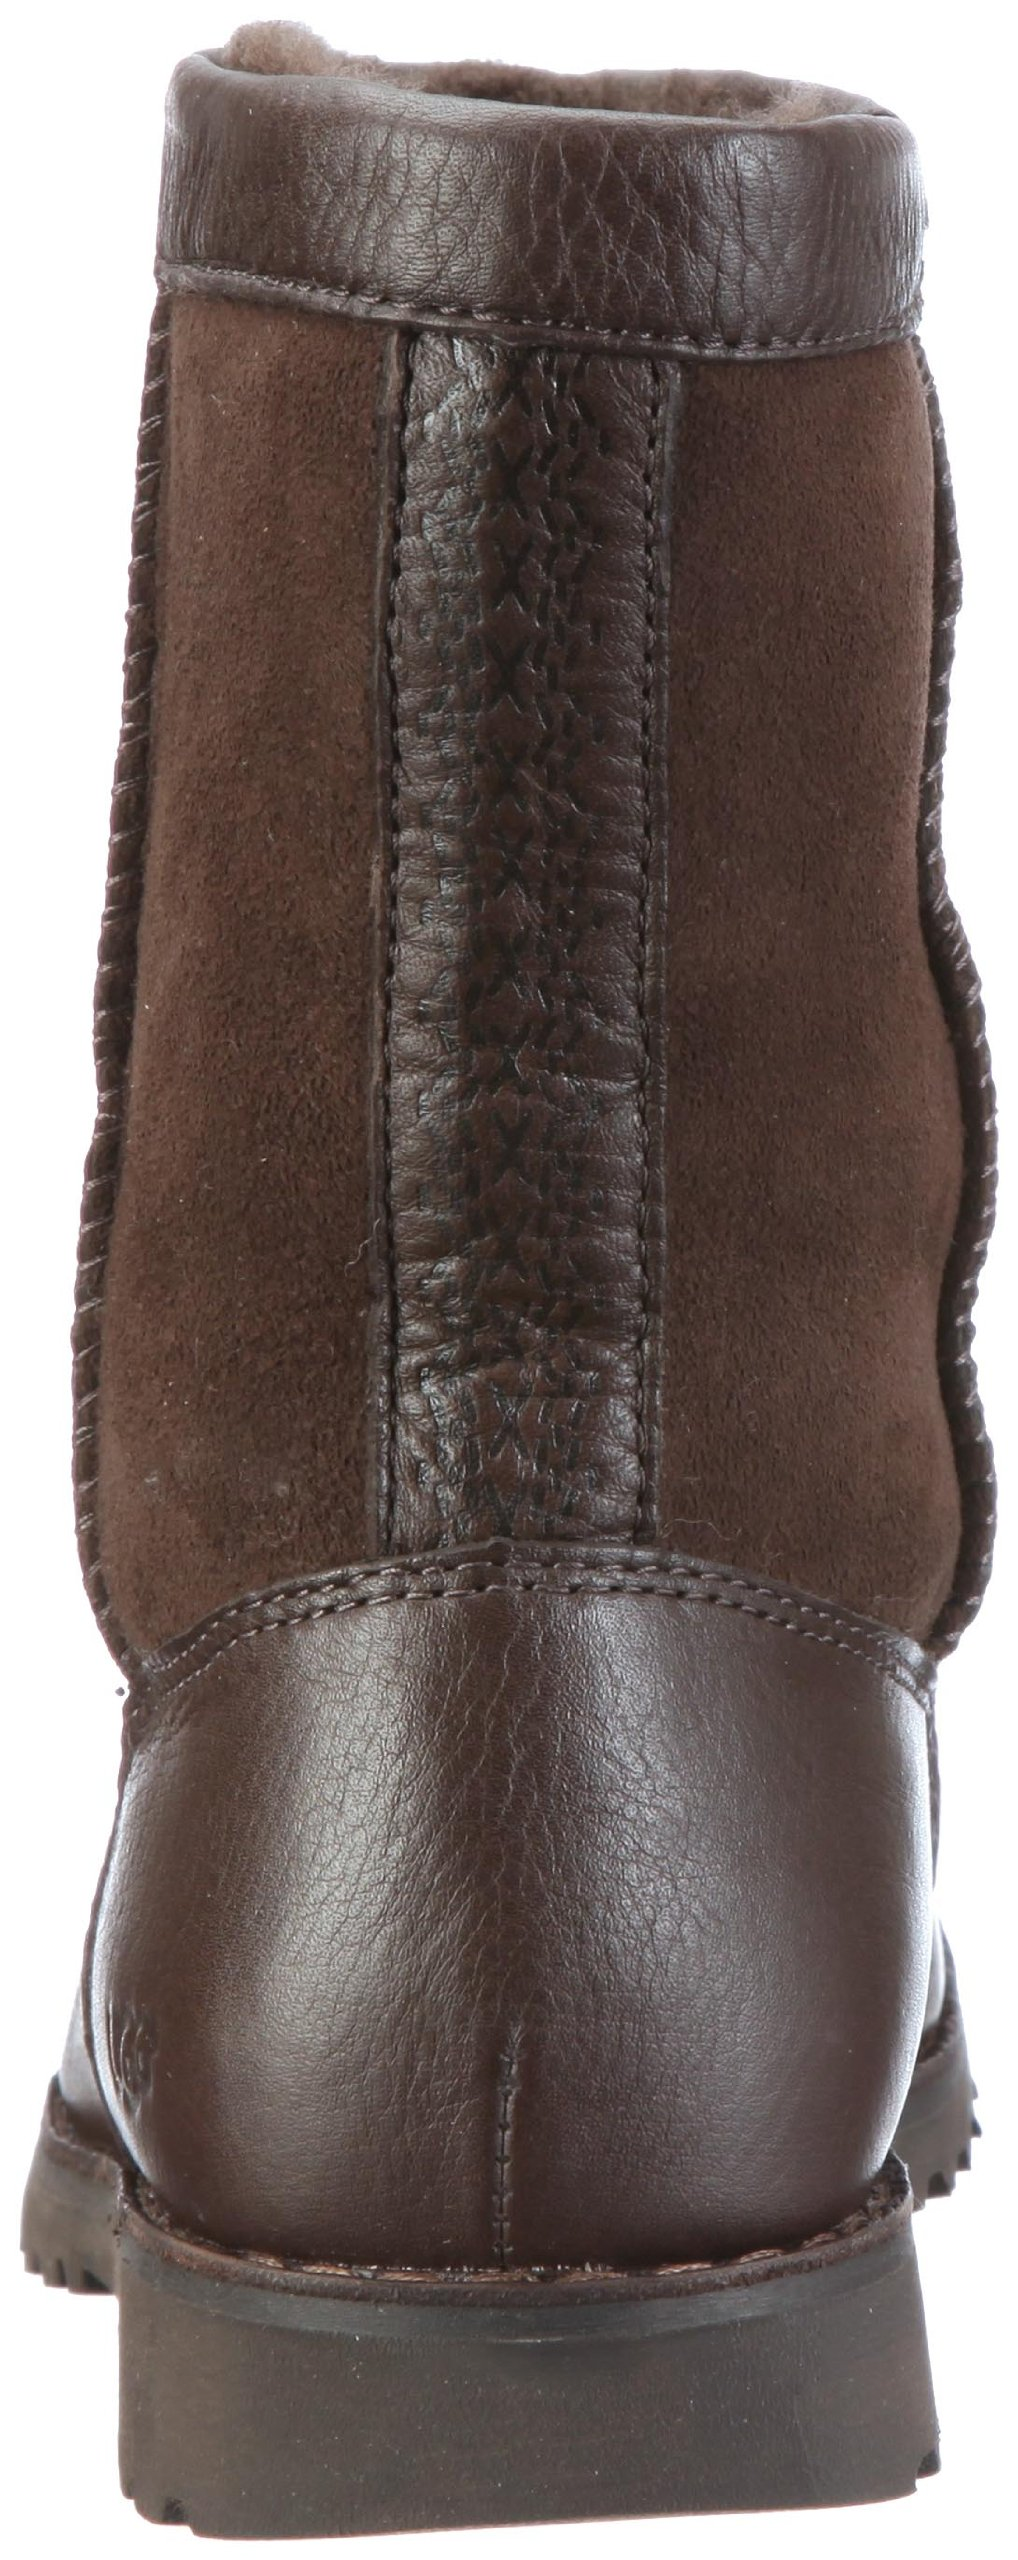 UGG Australia Children's Riverton Suede Boots,Chocolate/Chocolate,5 Child US by UGG (Image #2)